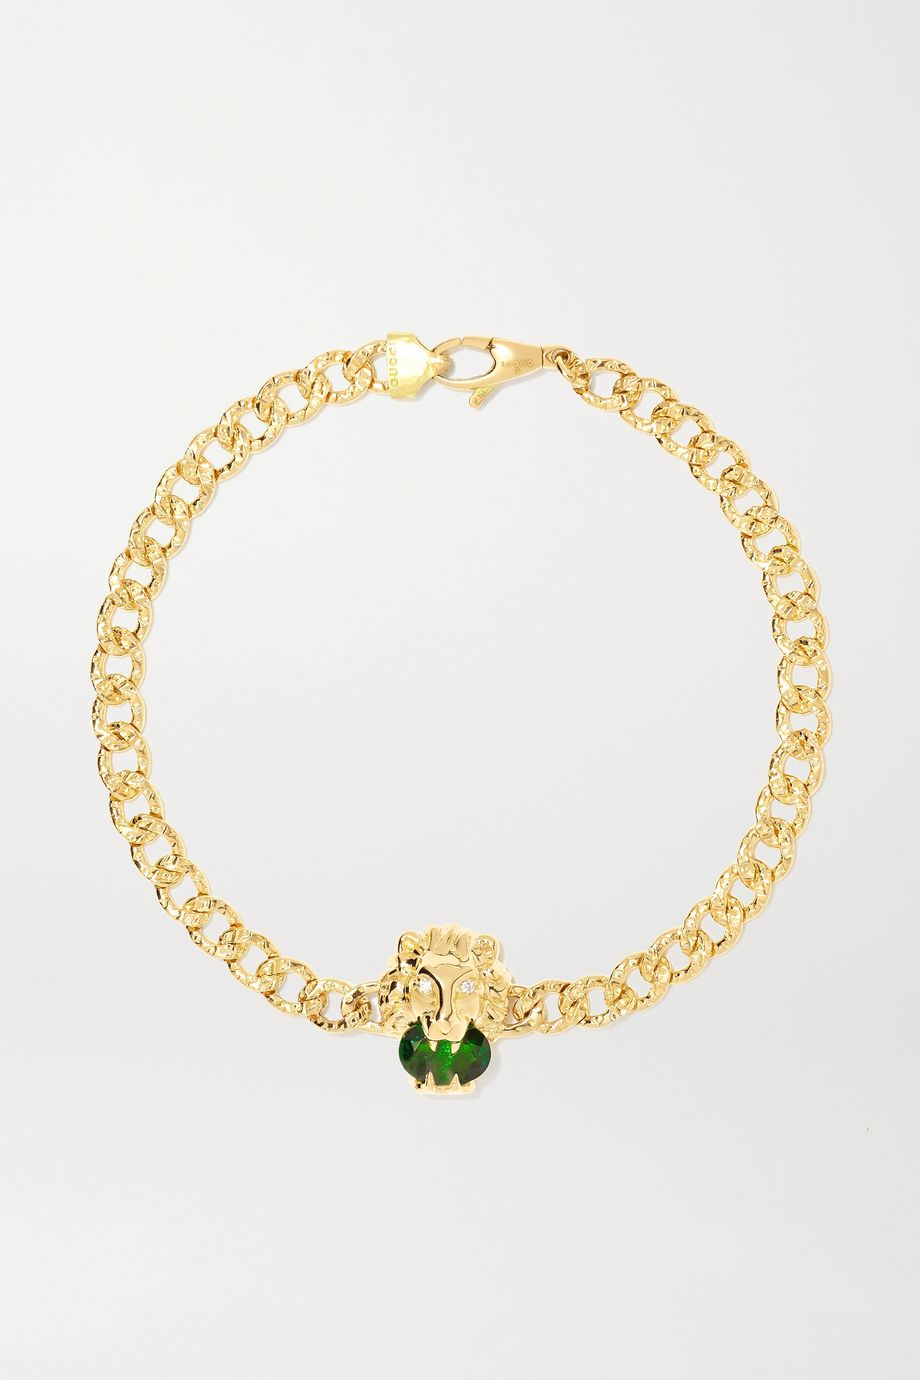 Gucci 18-karat gold, chrome diopside and diamond bracelet